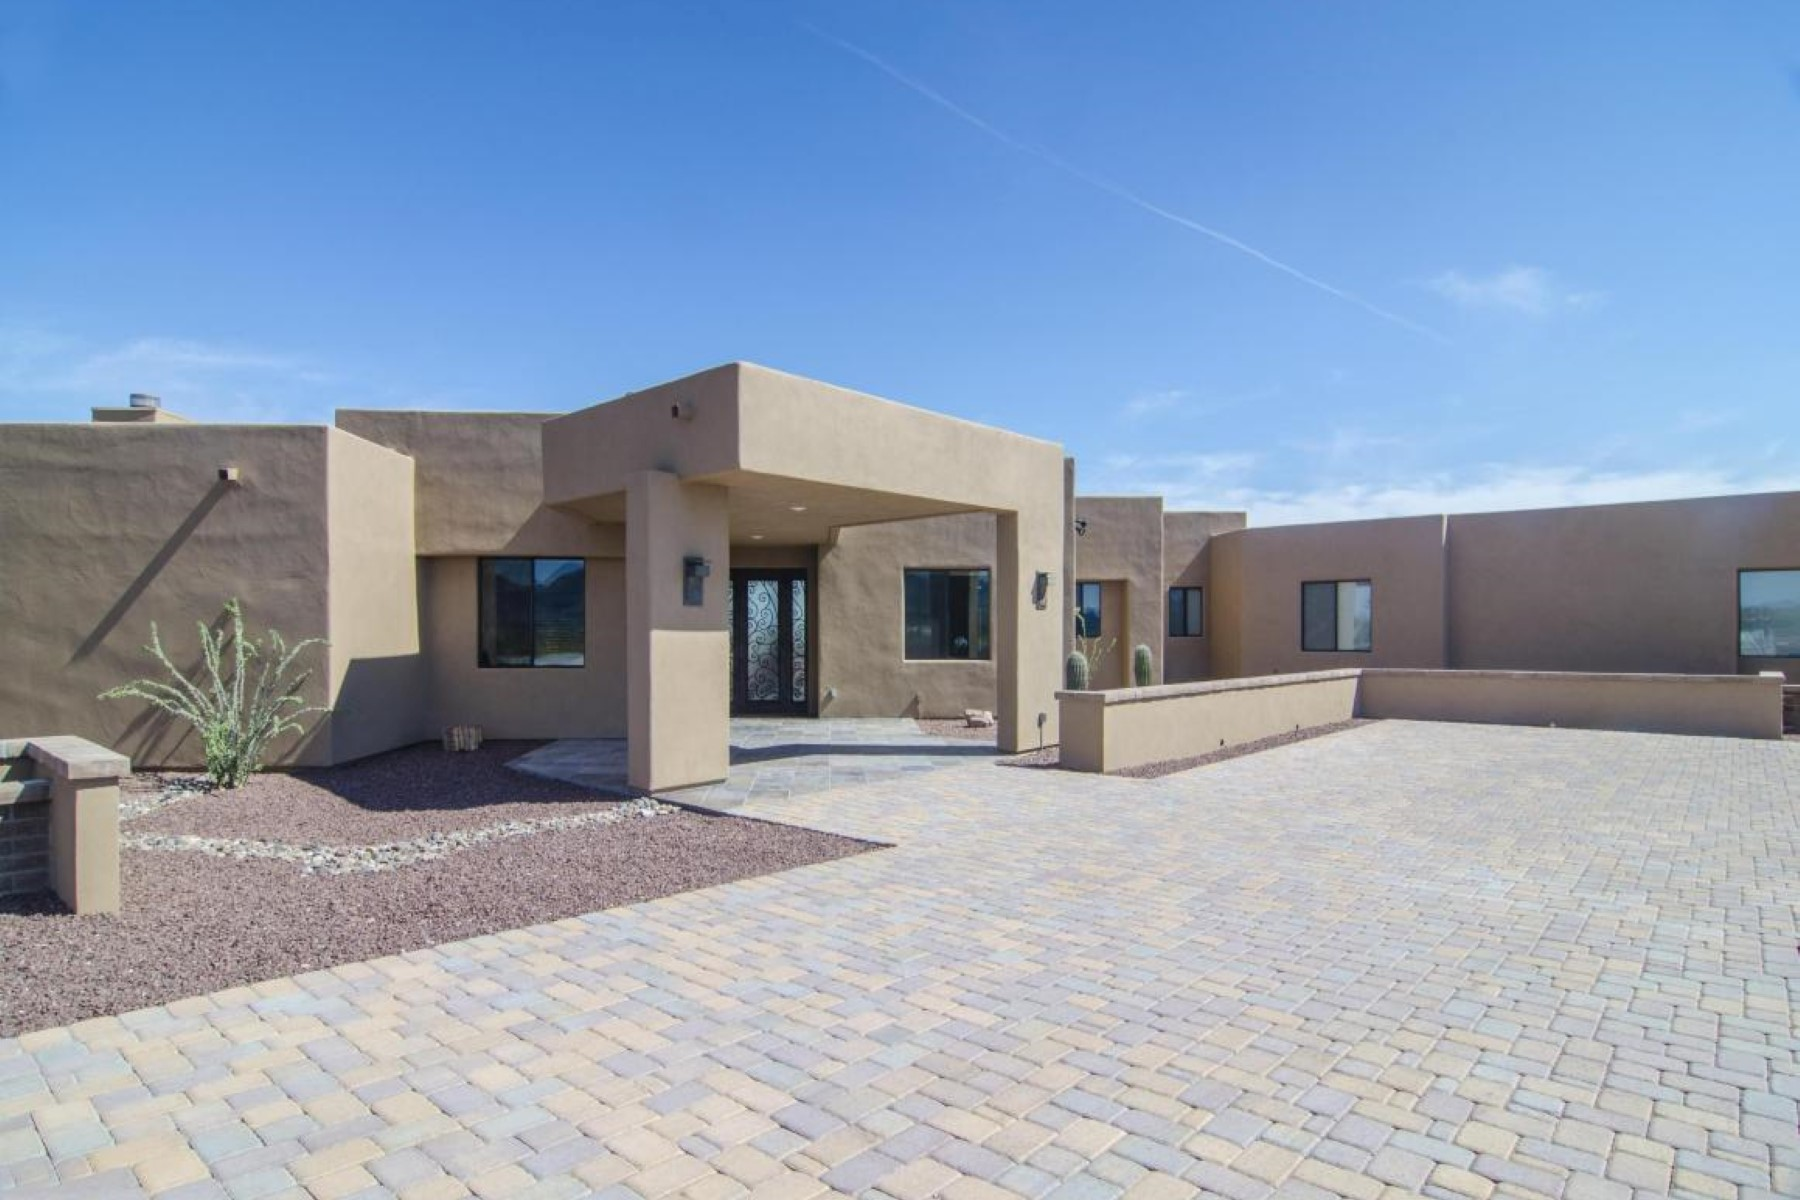 Single Family Home for Sale at Absolutely breathtaking Westside Rio Rico home 1249 Calle Cherokee Rio Rico, Arizona, 85648 United States